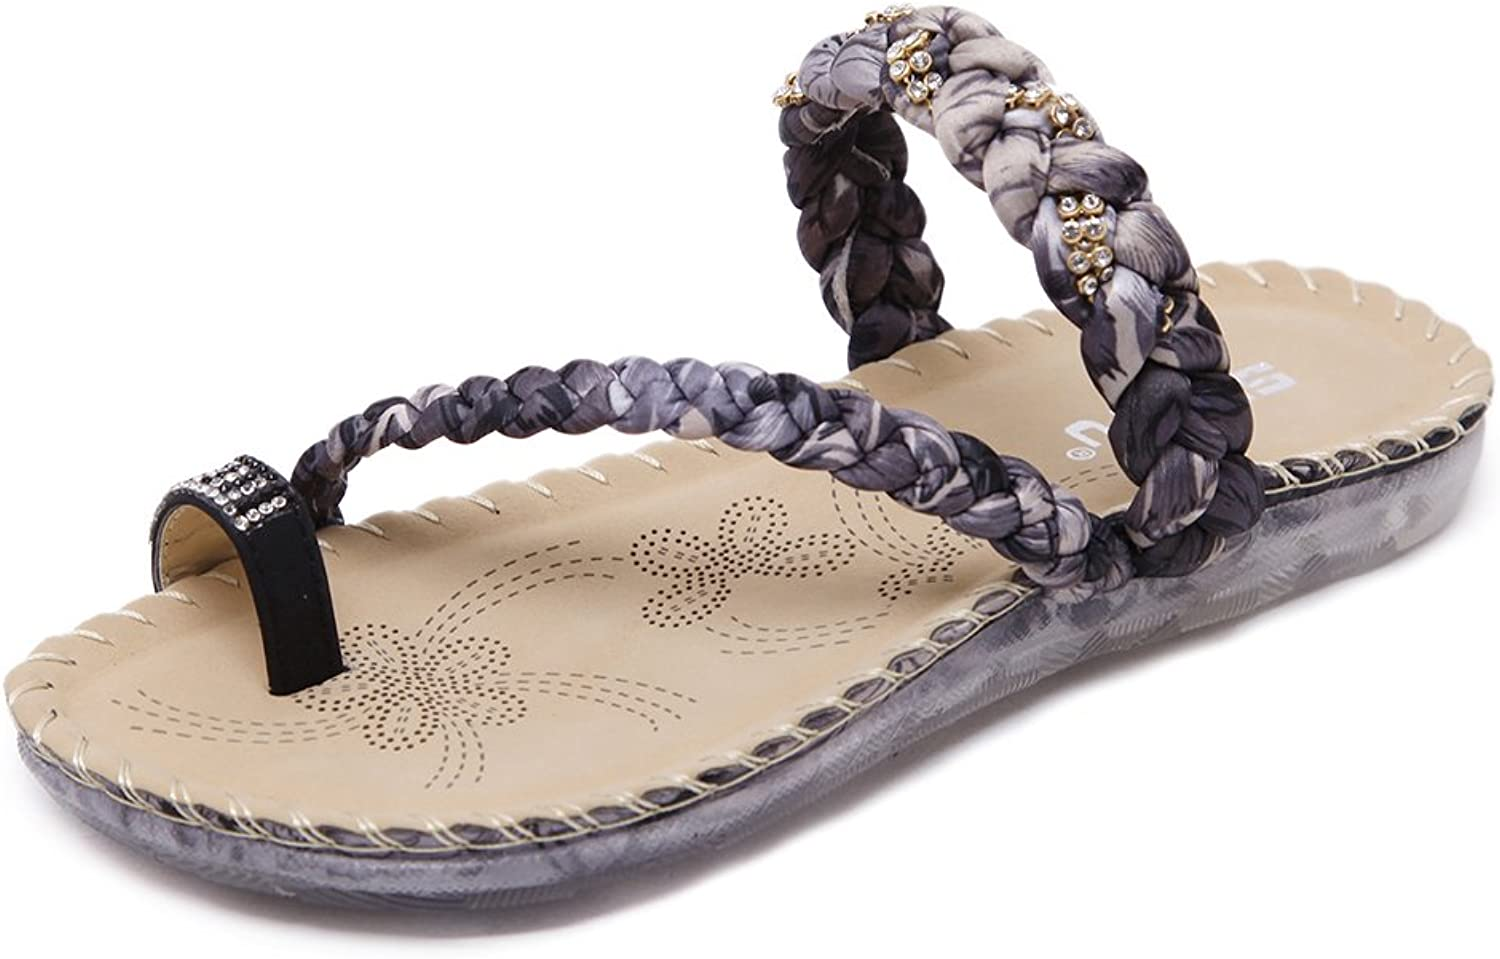 Baviue Women's Leather Fashion Flat Flip Flops Thong Sandals